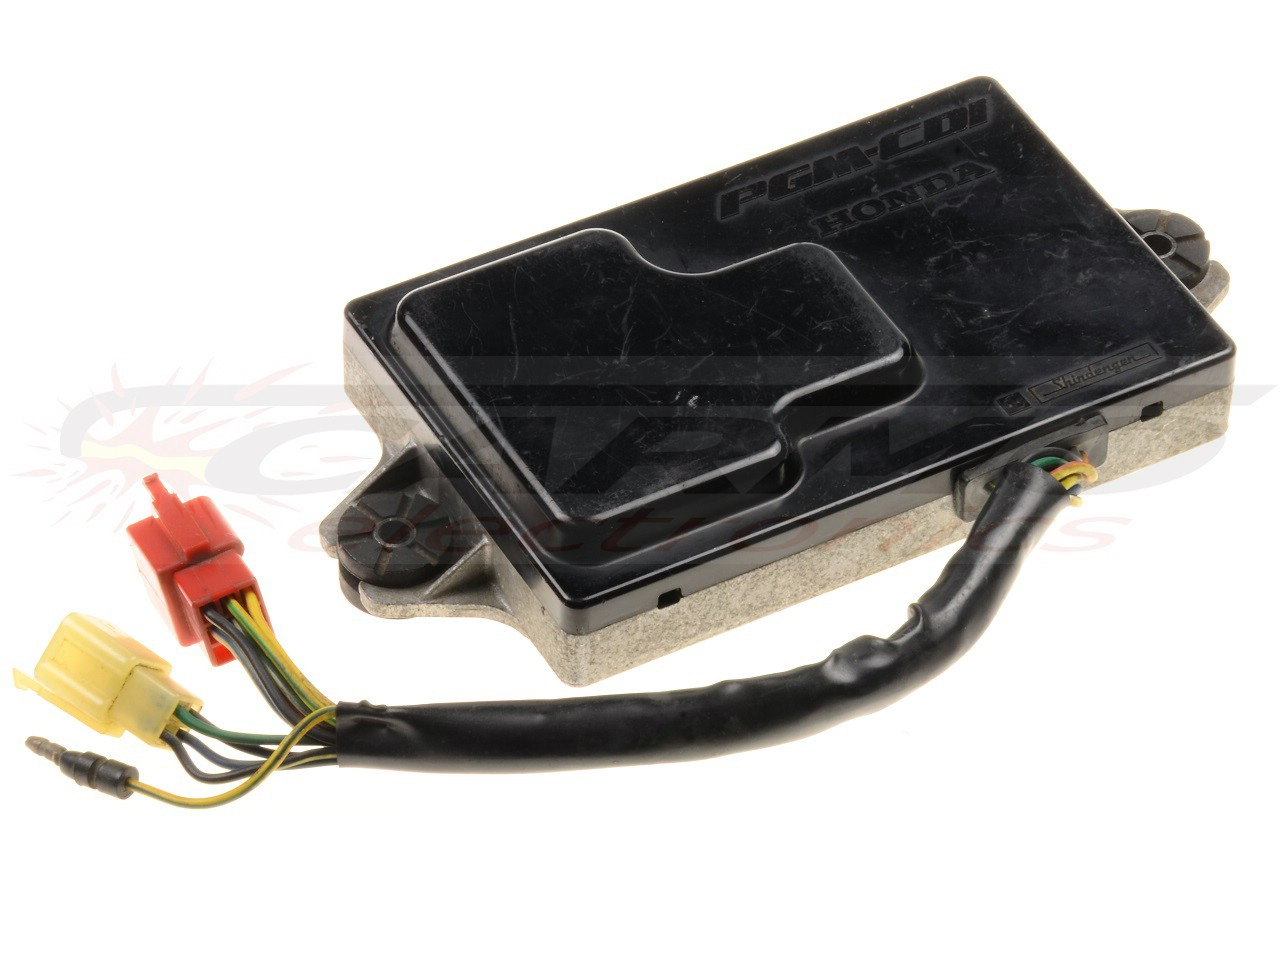 HONDA : Carmo Electronics, The place for parts or electronics for